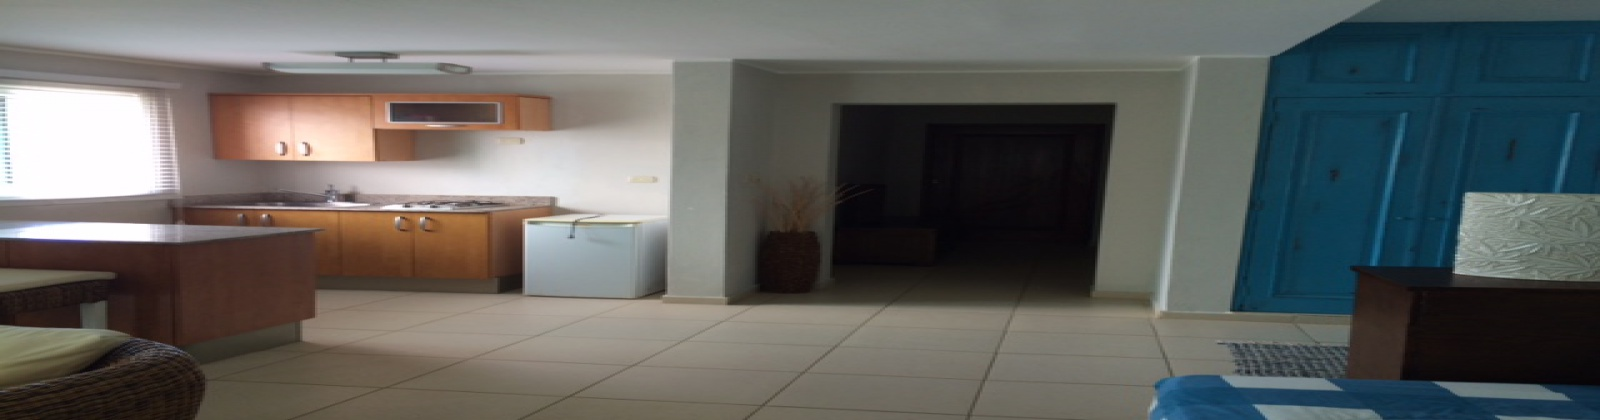 1 Bedrooms, Apartment, For sale, Kite Beach, 2 Bathrooms, Listing ID 1005, Cabarete, Dominican Republic,